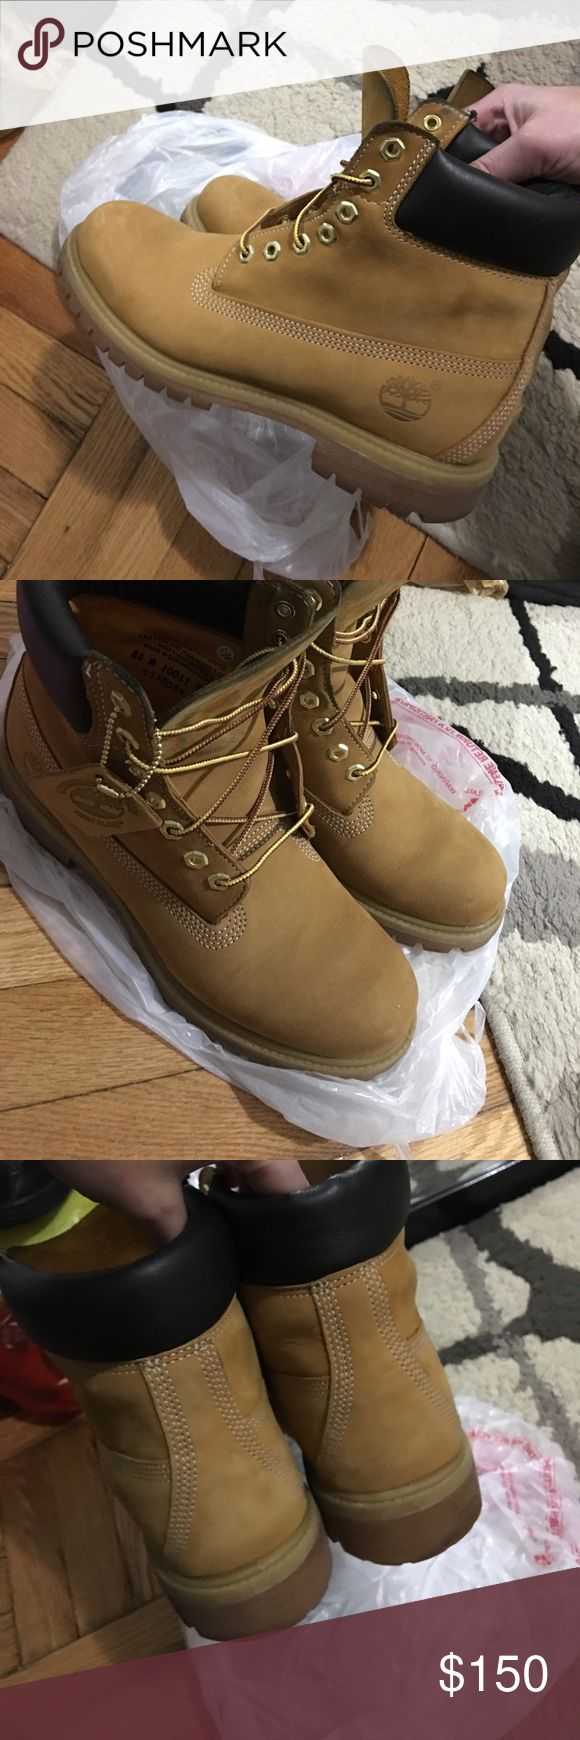 """⏳MENS timberland winter boots Immaculate condition absolutely no scuffs no flaws. """"Primaloft"""" 400 gram.. All leather.. 8.5/9 it is tagged 8.5 but will add in size availability because it fit like a 9.. MSRP:$190+tax Timberland Shoes Boots"""